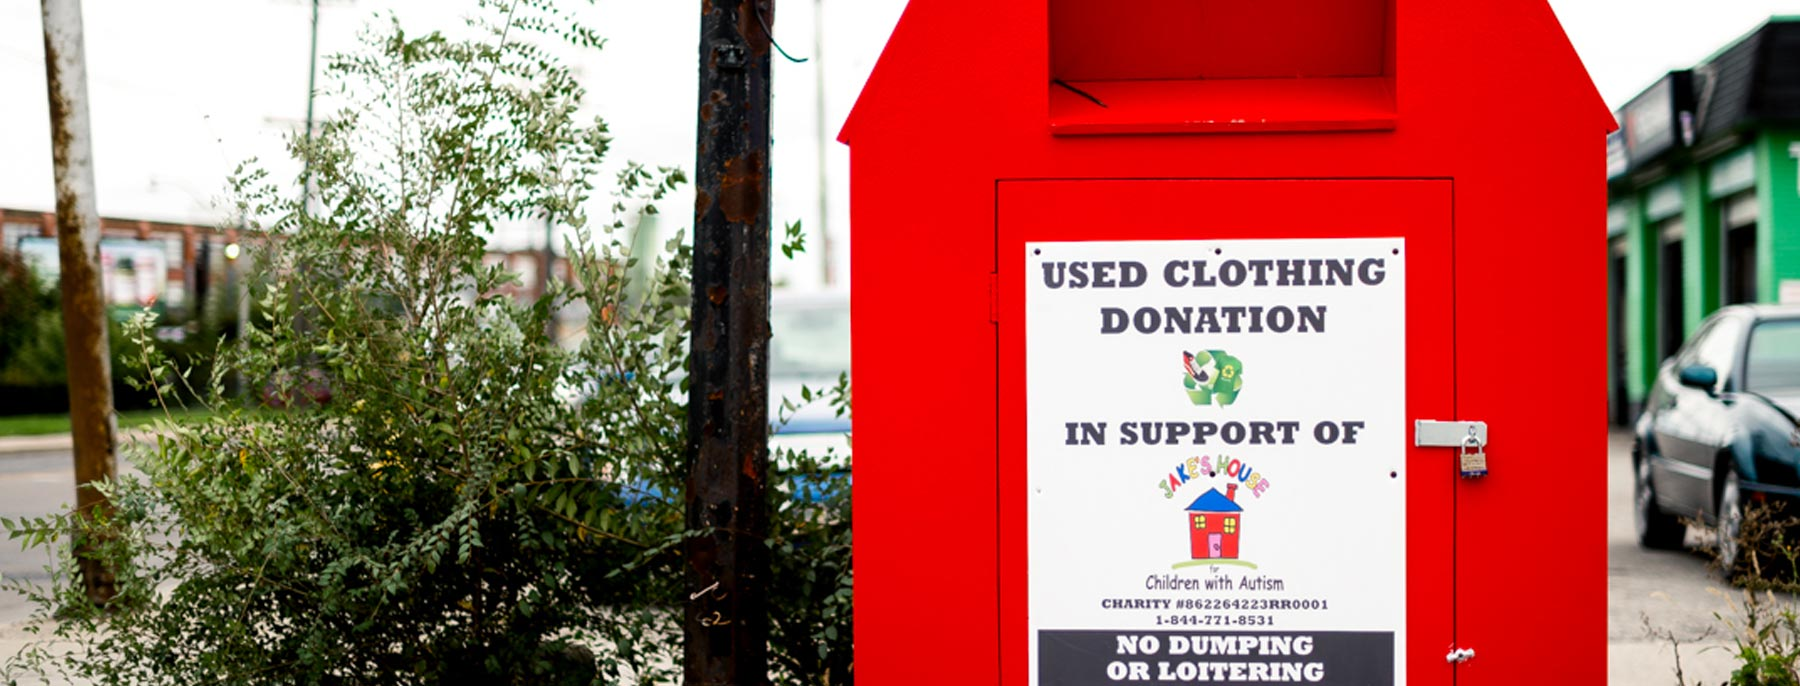 big, red clothing donation bin outside